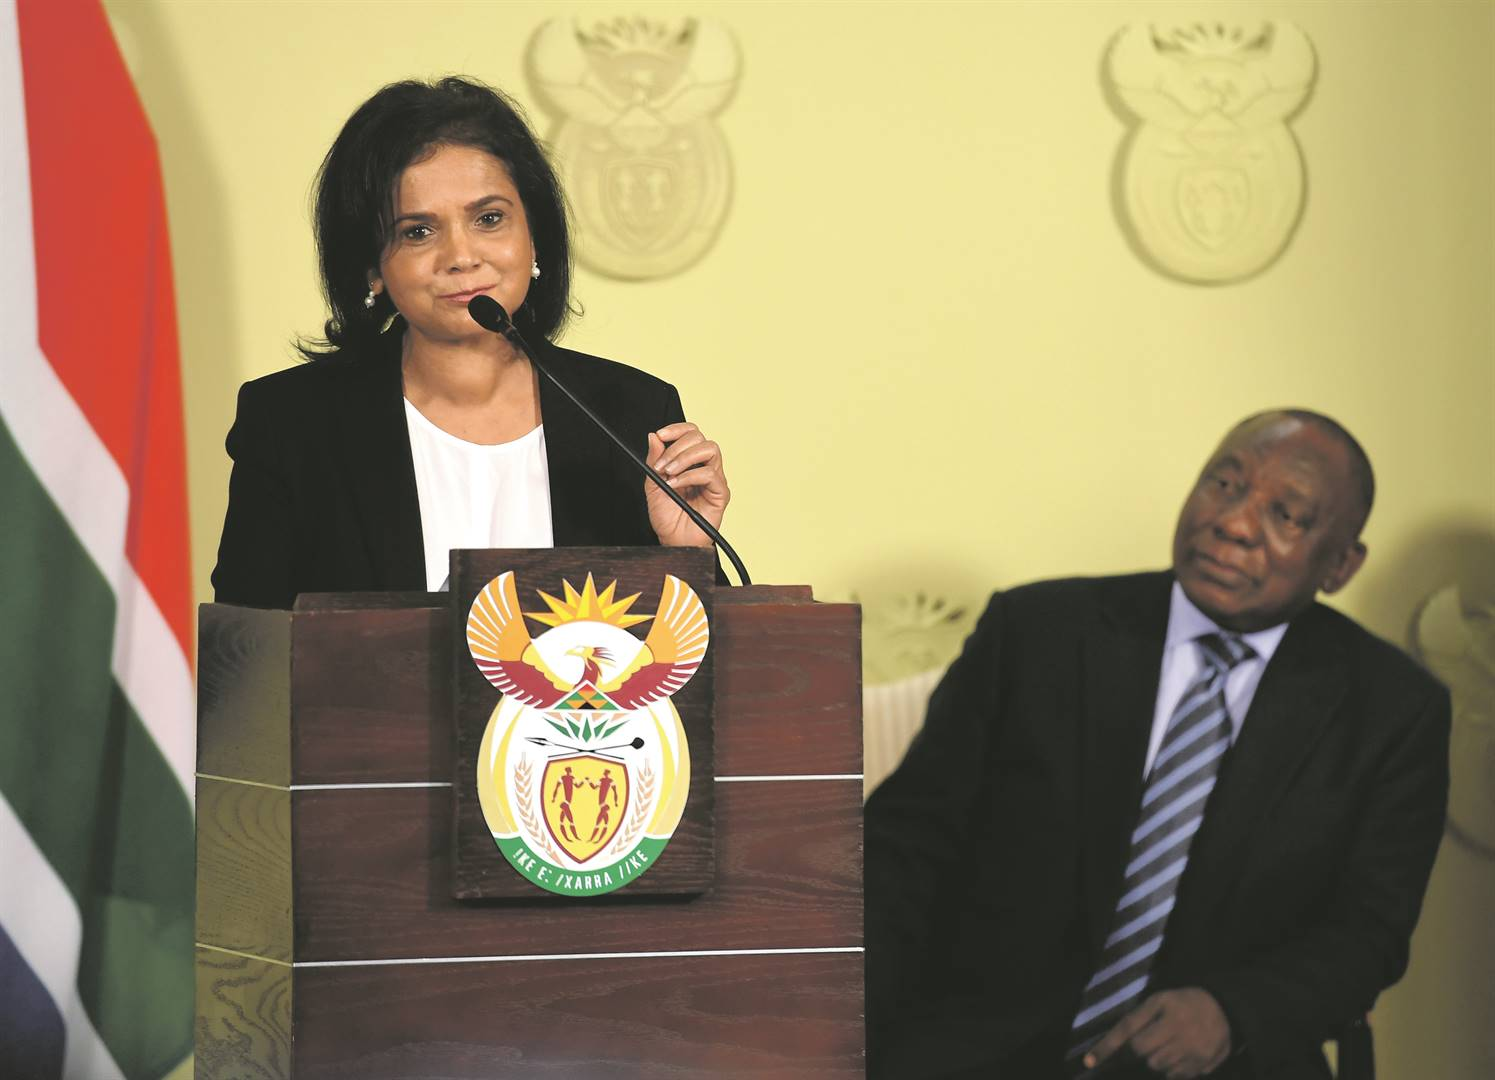 Advocate Shamila Batohi and President Cyril Ramaphosa at the announcement of her appointment.